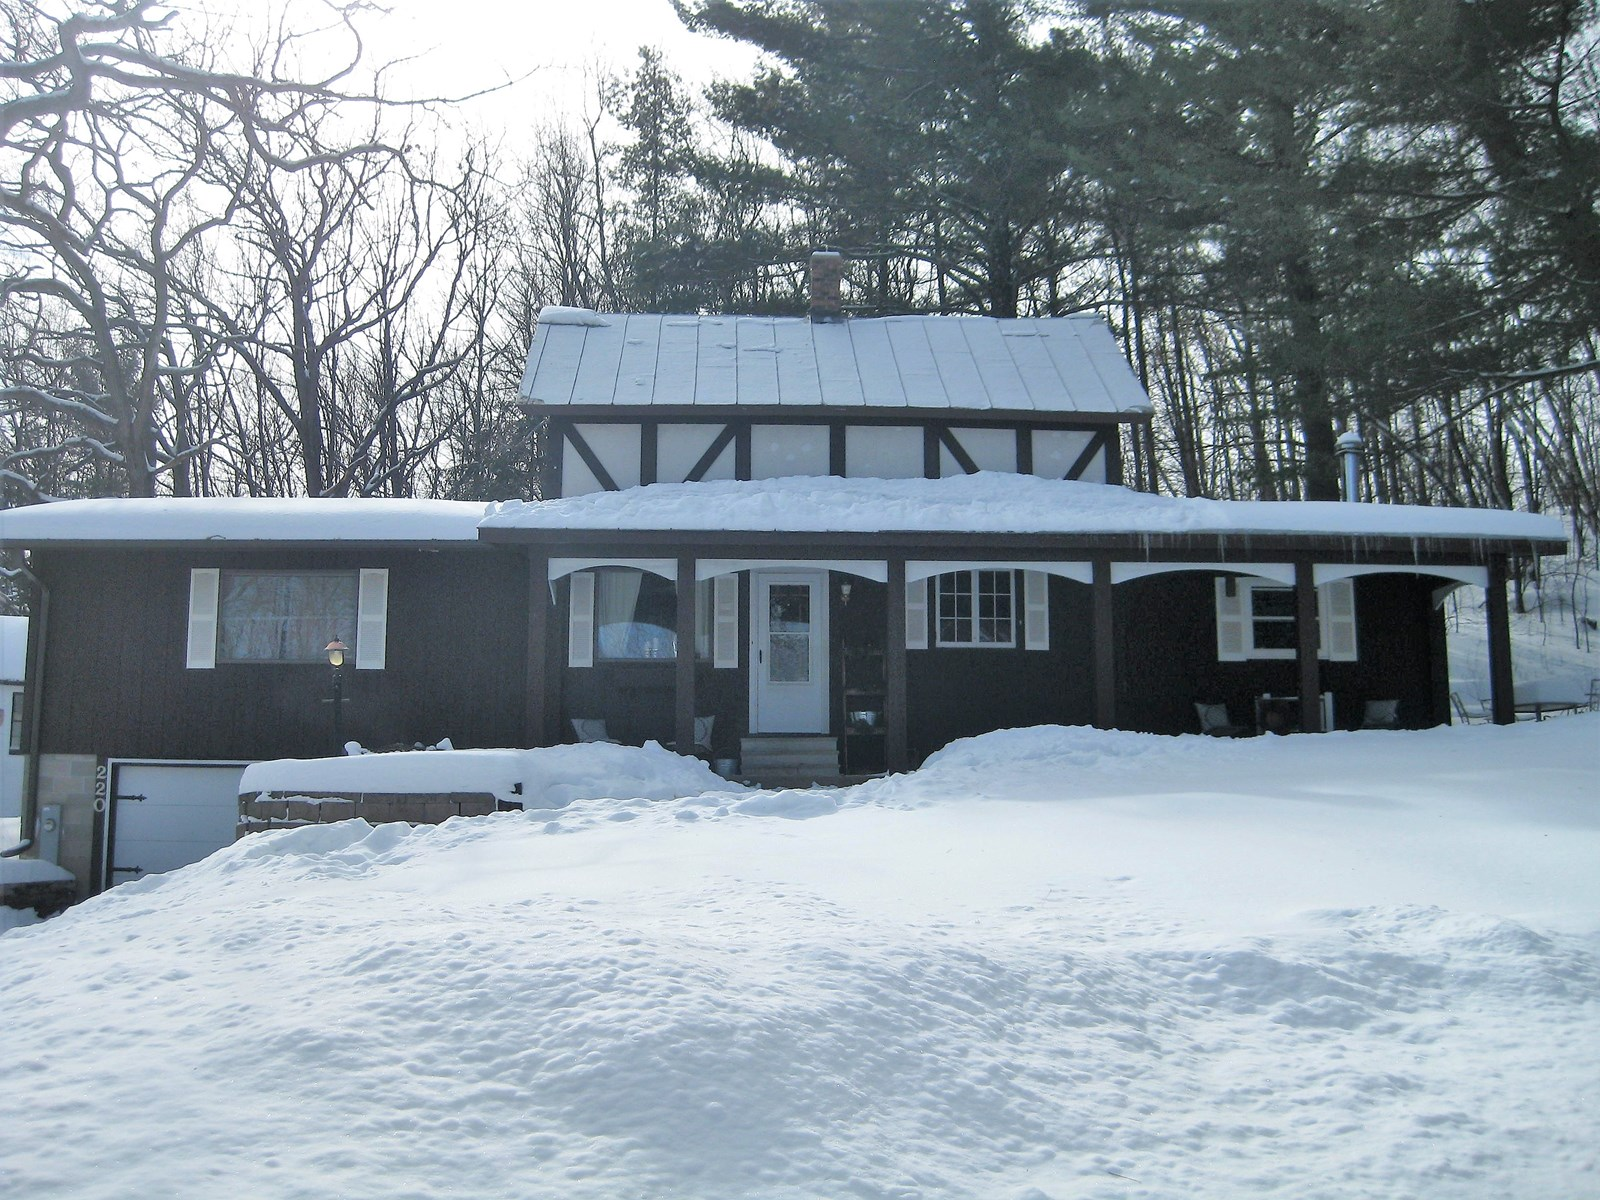 Charming Home for Sale in Scandinavia, Waupaca Co, WI